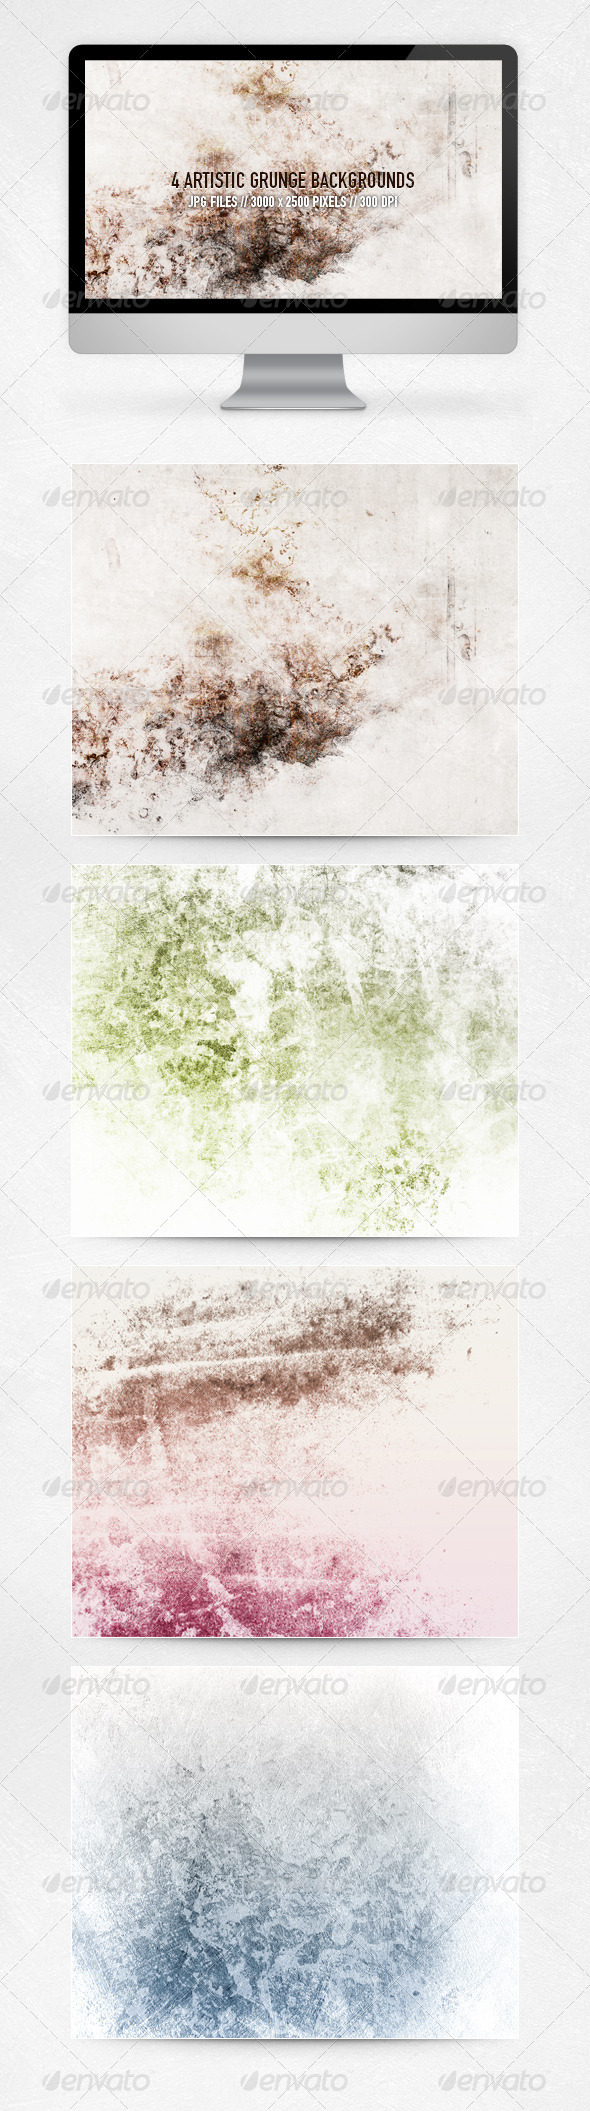 Artistic Grunge Backgrounds - Urban Backgrounds